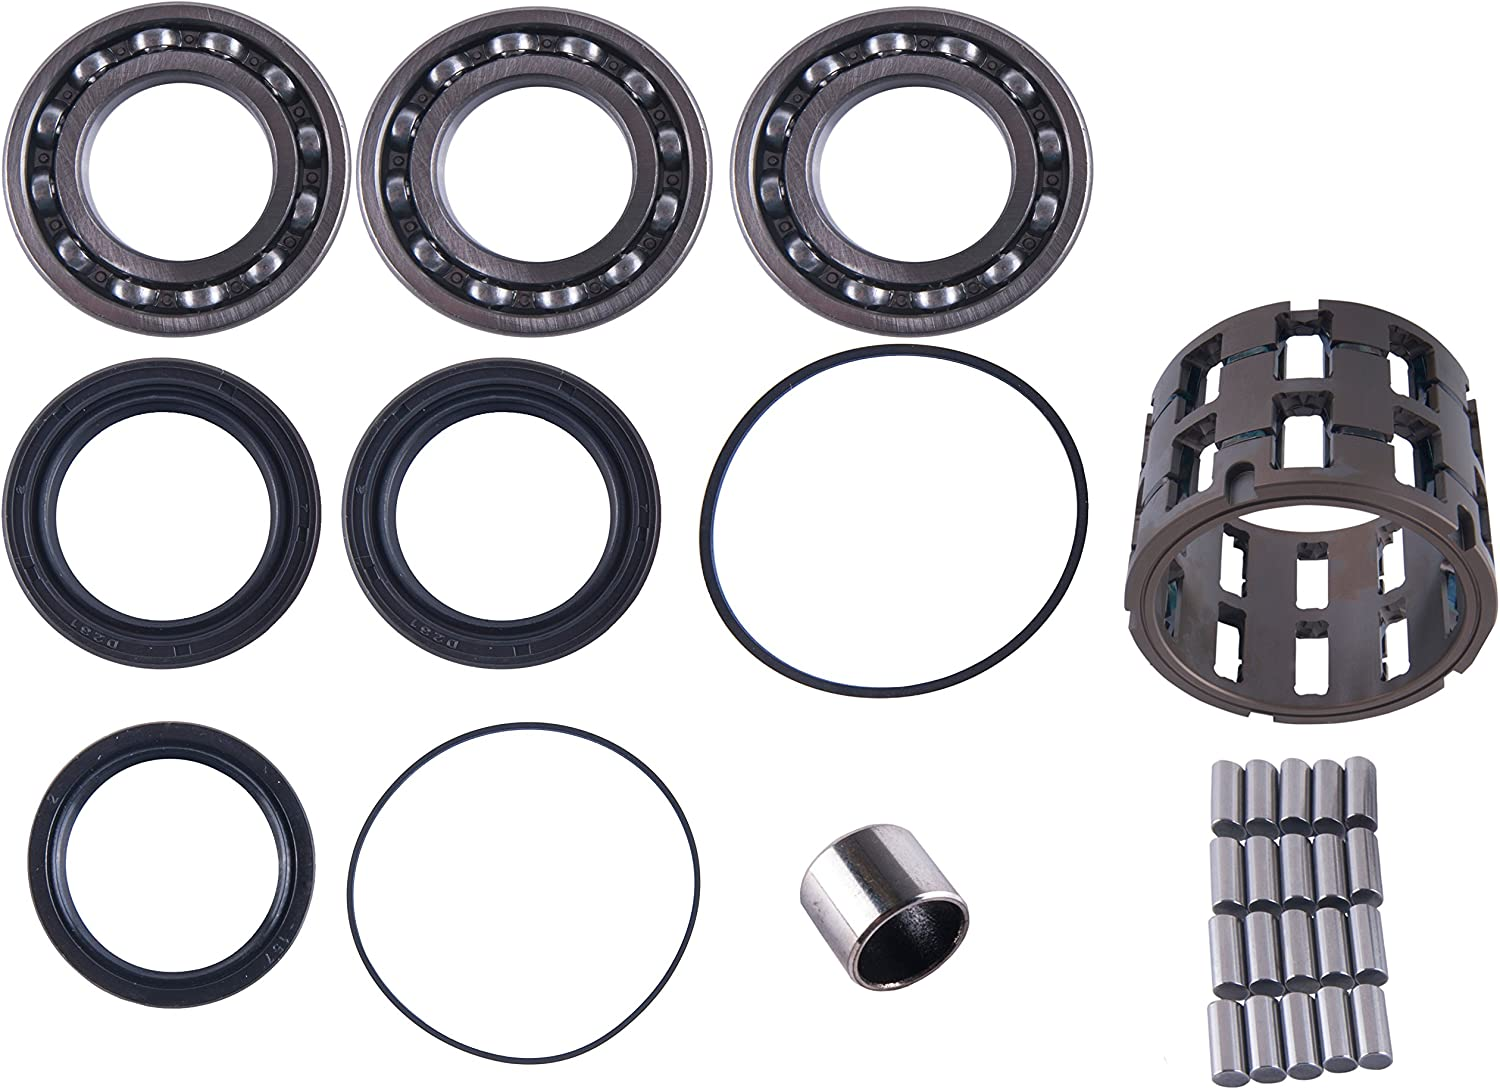 FRONT DIFFERENTIAL ROLLER CAGE Fits POLARIS SPORTSMAN XP 550 2009 2010 2012 2014